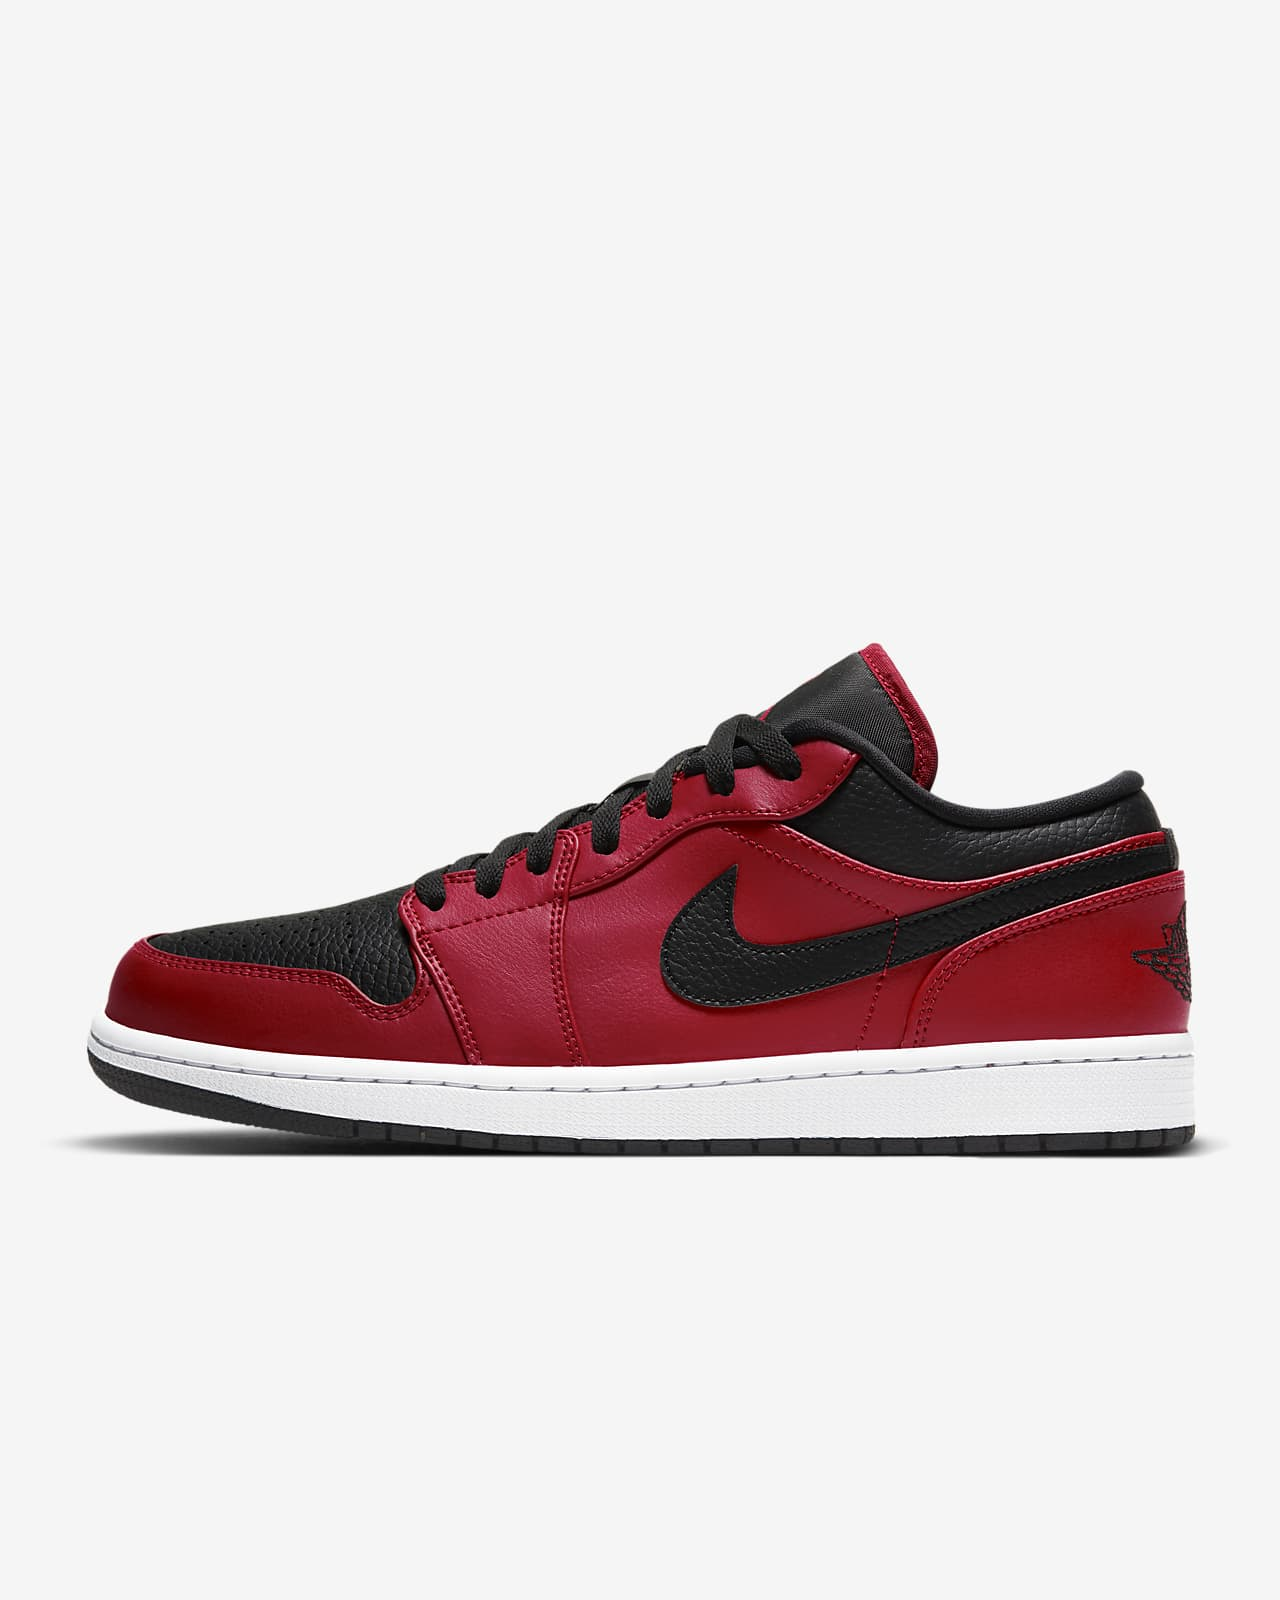 Bota Air Jordan 1 Low